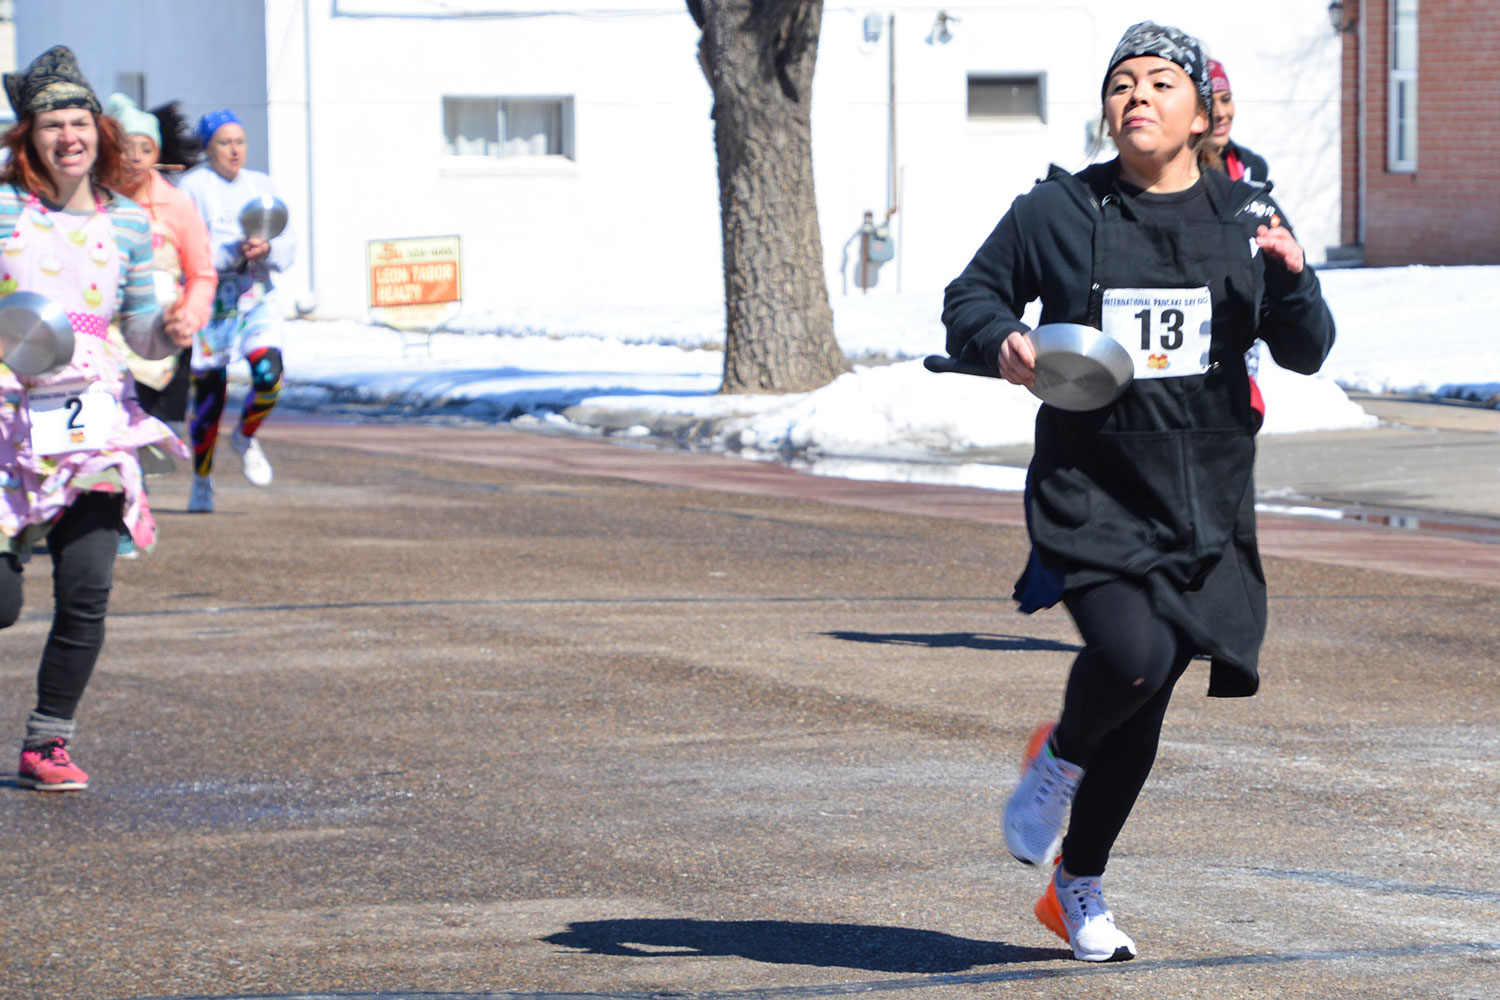 Abby Lovato, a SCCC student and Liberal resident, participated in the Last Chance Race. This is the traditional race depicting a woman running from her house to church after she realized she was late. Liberal competes every year with their sister city, Olney, England. The town with the fastest time is named champion for the year. Lovato placed  sixth.